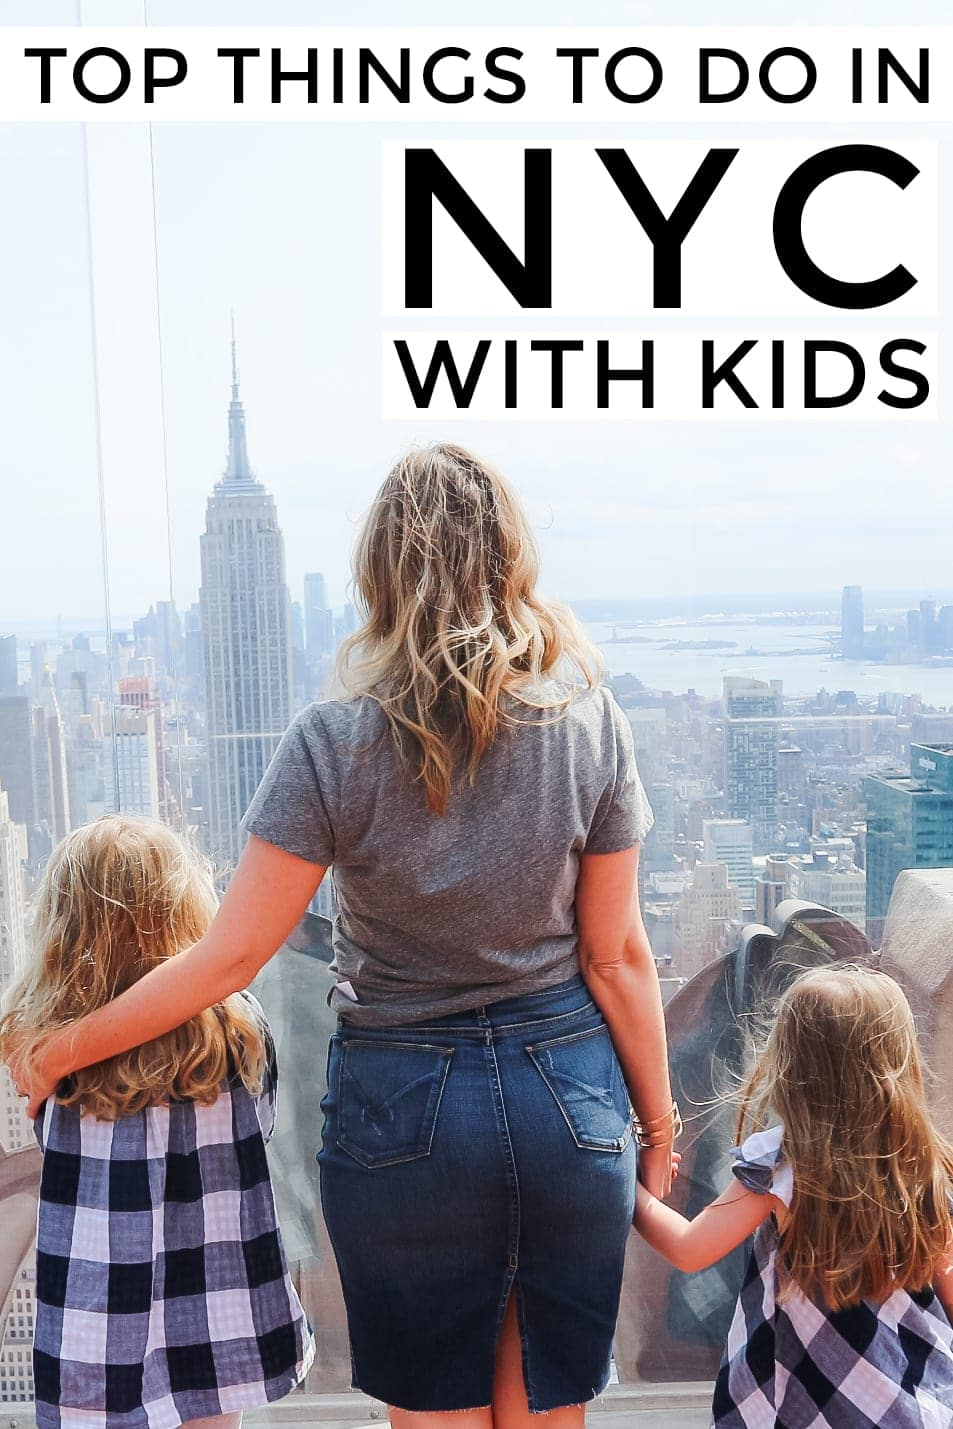 Top things to do in NYC with Kids - family travel guide by Meg O. on the Go